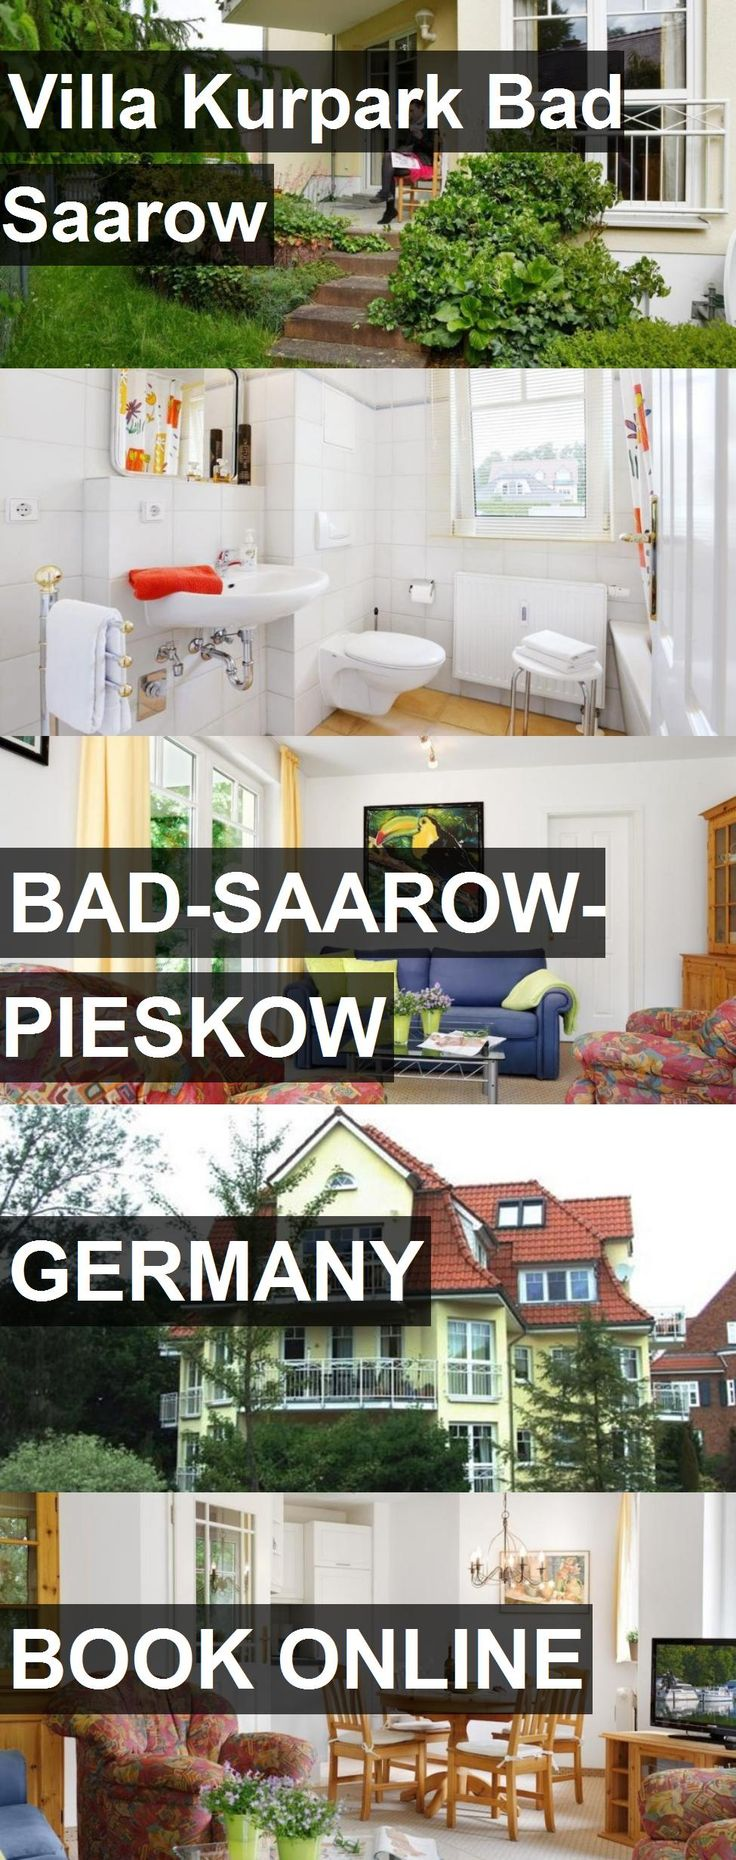 Hotel Villa Kurpark Bad Saarow in Bad-Saarow-Pieskow, Germany. For more information, photos, reviews and best prices please follow the link. #Germany #Bad-Saarow-Pieskow #VillaKurparkBadSaarow #hotel #travel #vacation